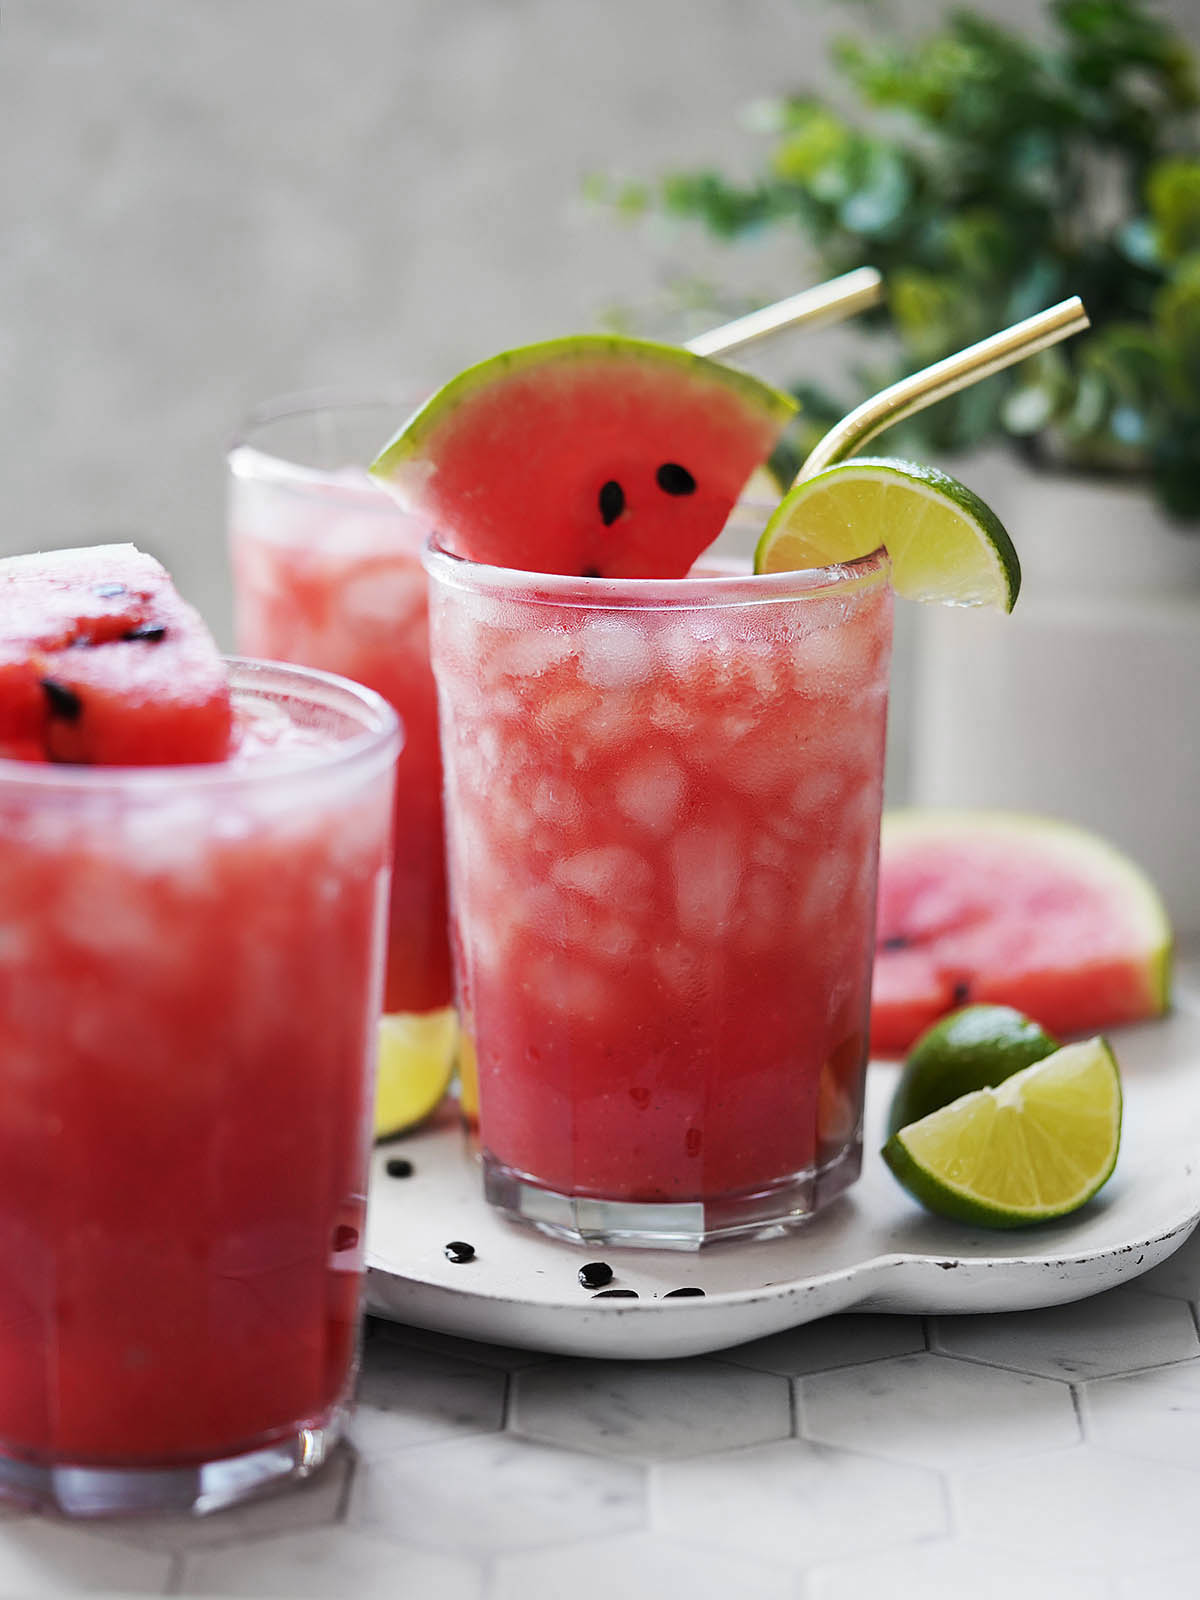 Three glasses with agua de sandia and limes on the side.